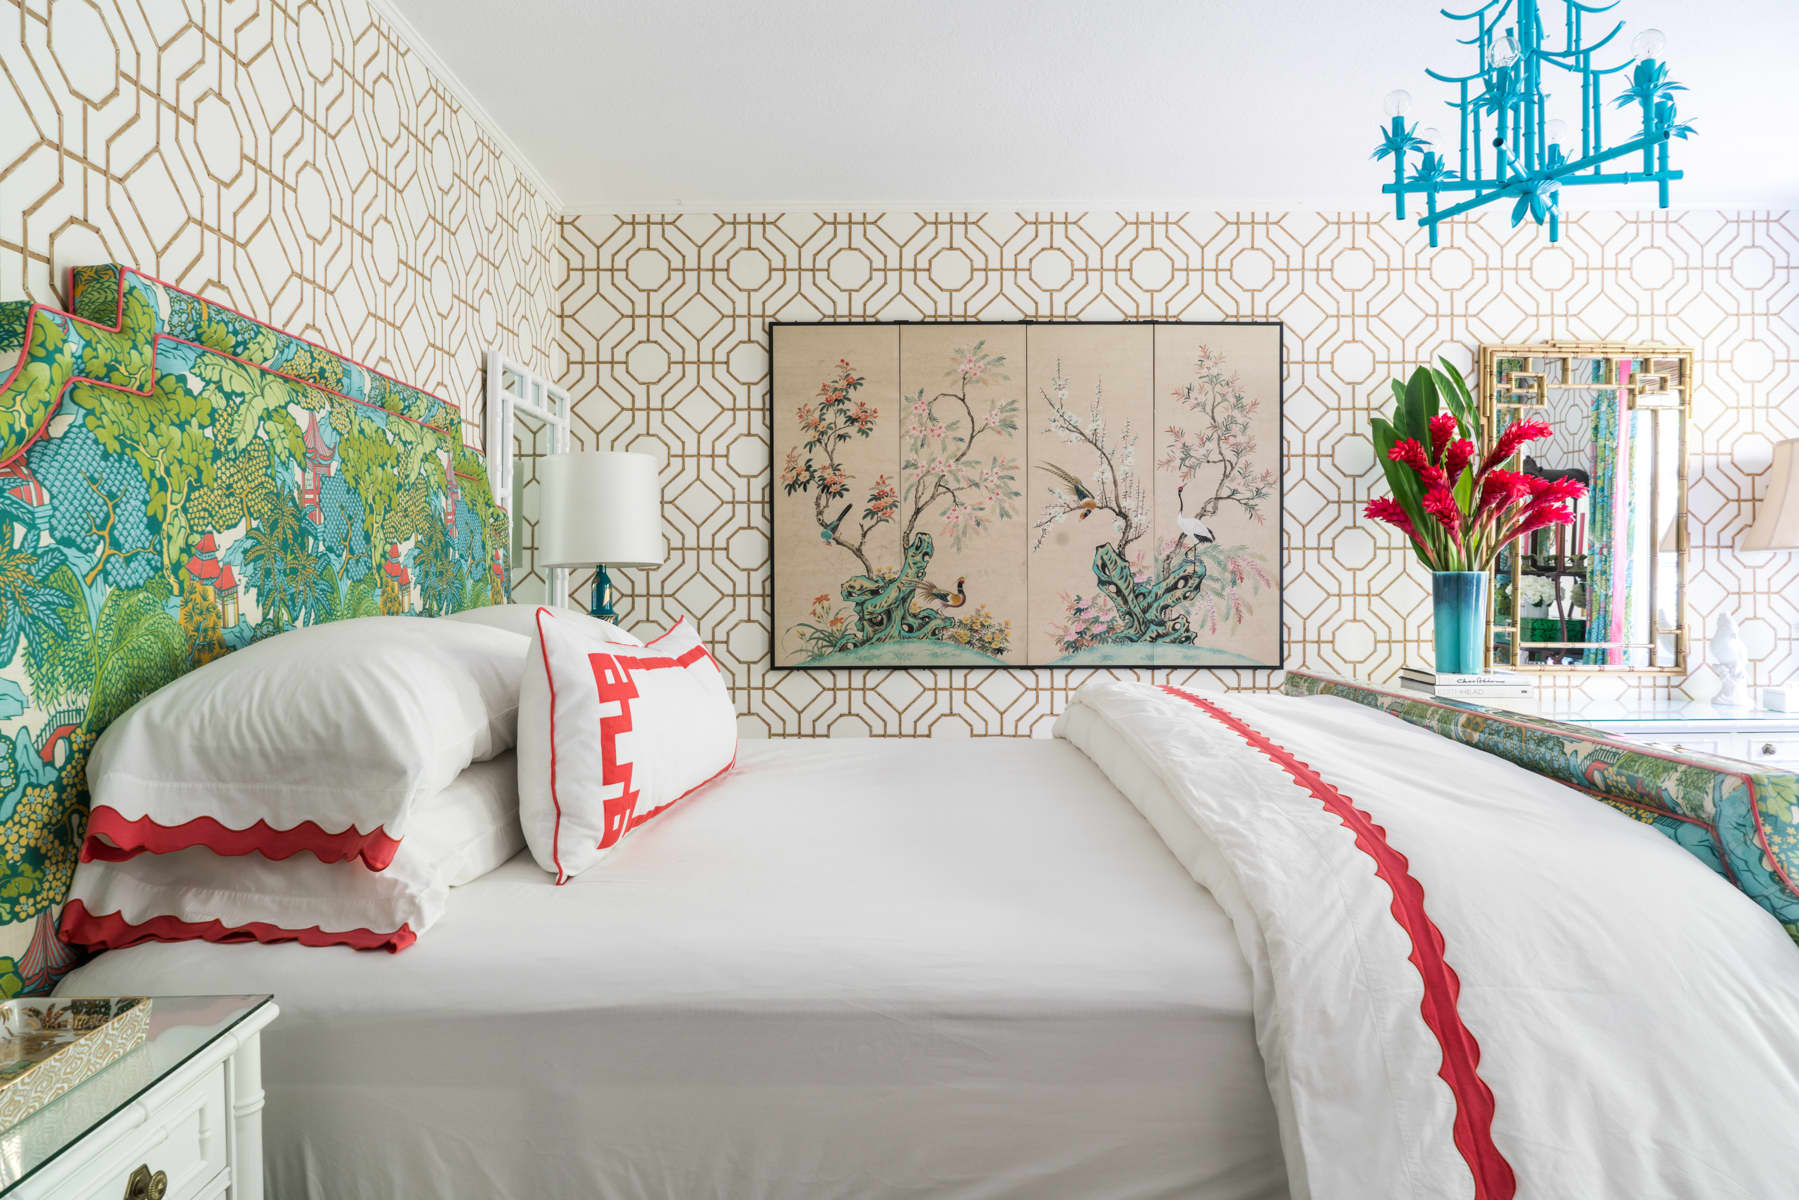 Los Angeles House Tour: A Colorful, Patterned Rental